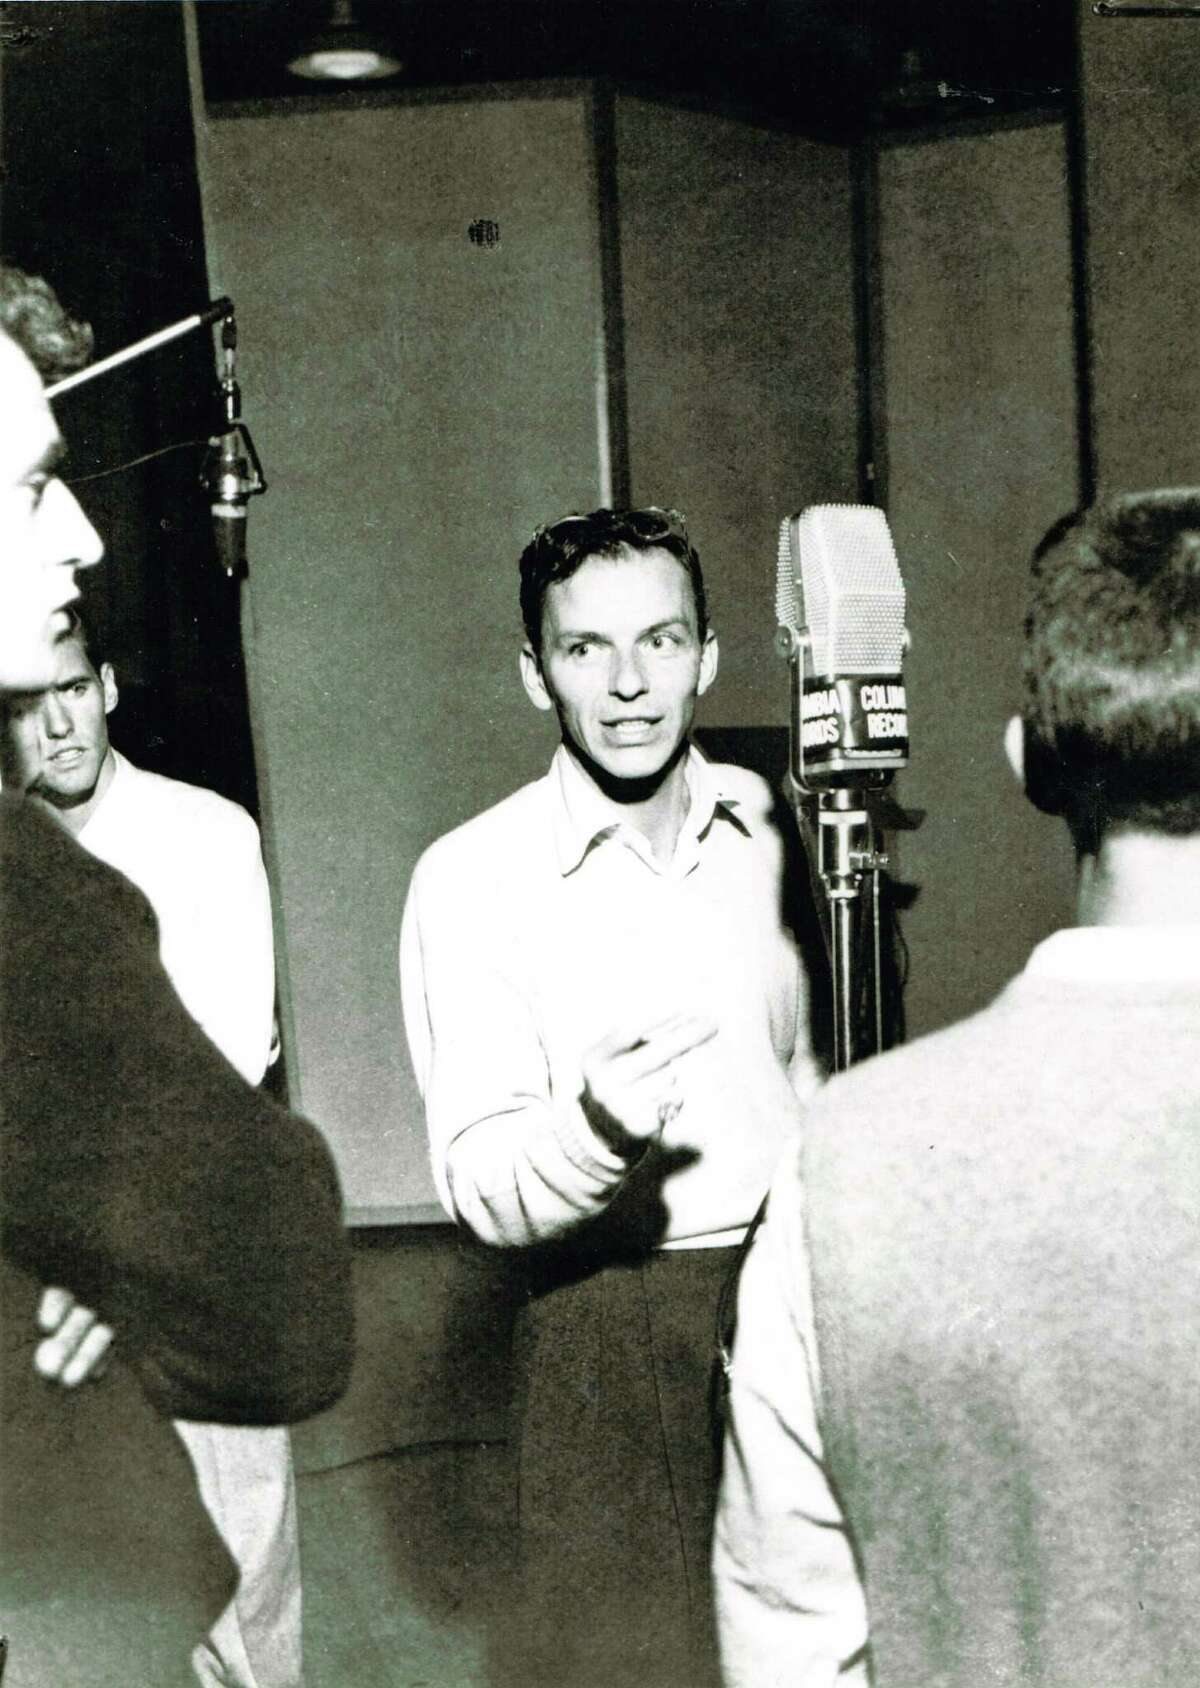 A two-part HBO documentary follows the highs and lows of Frank Sinatra's career and personal life.